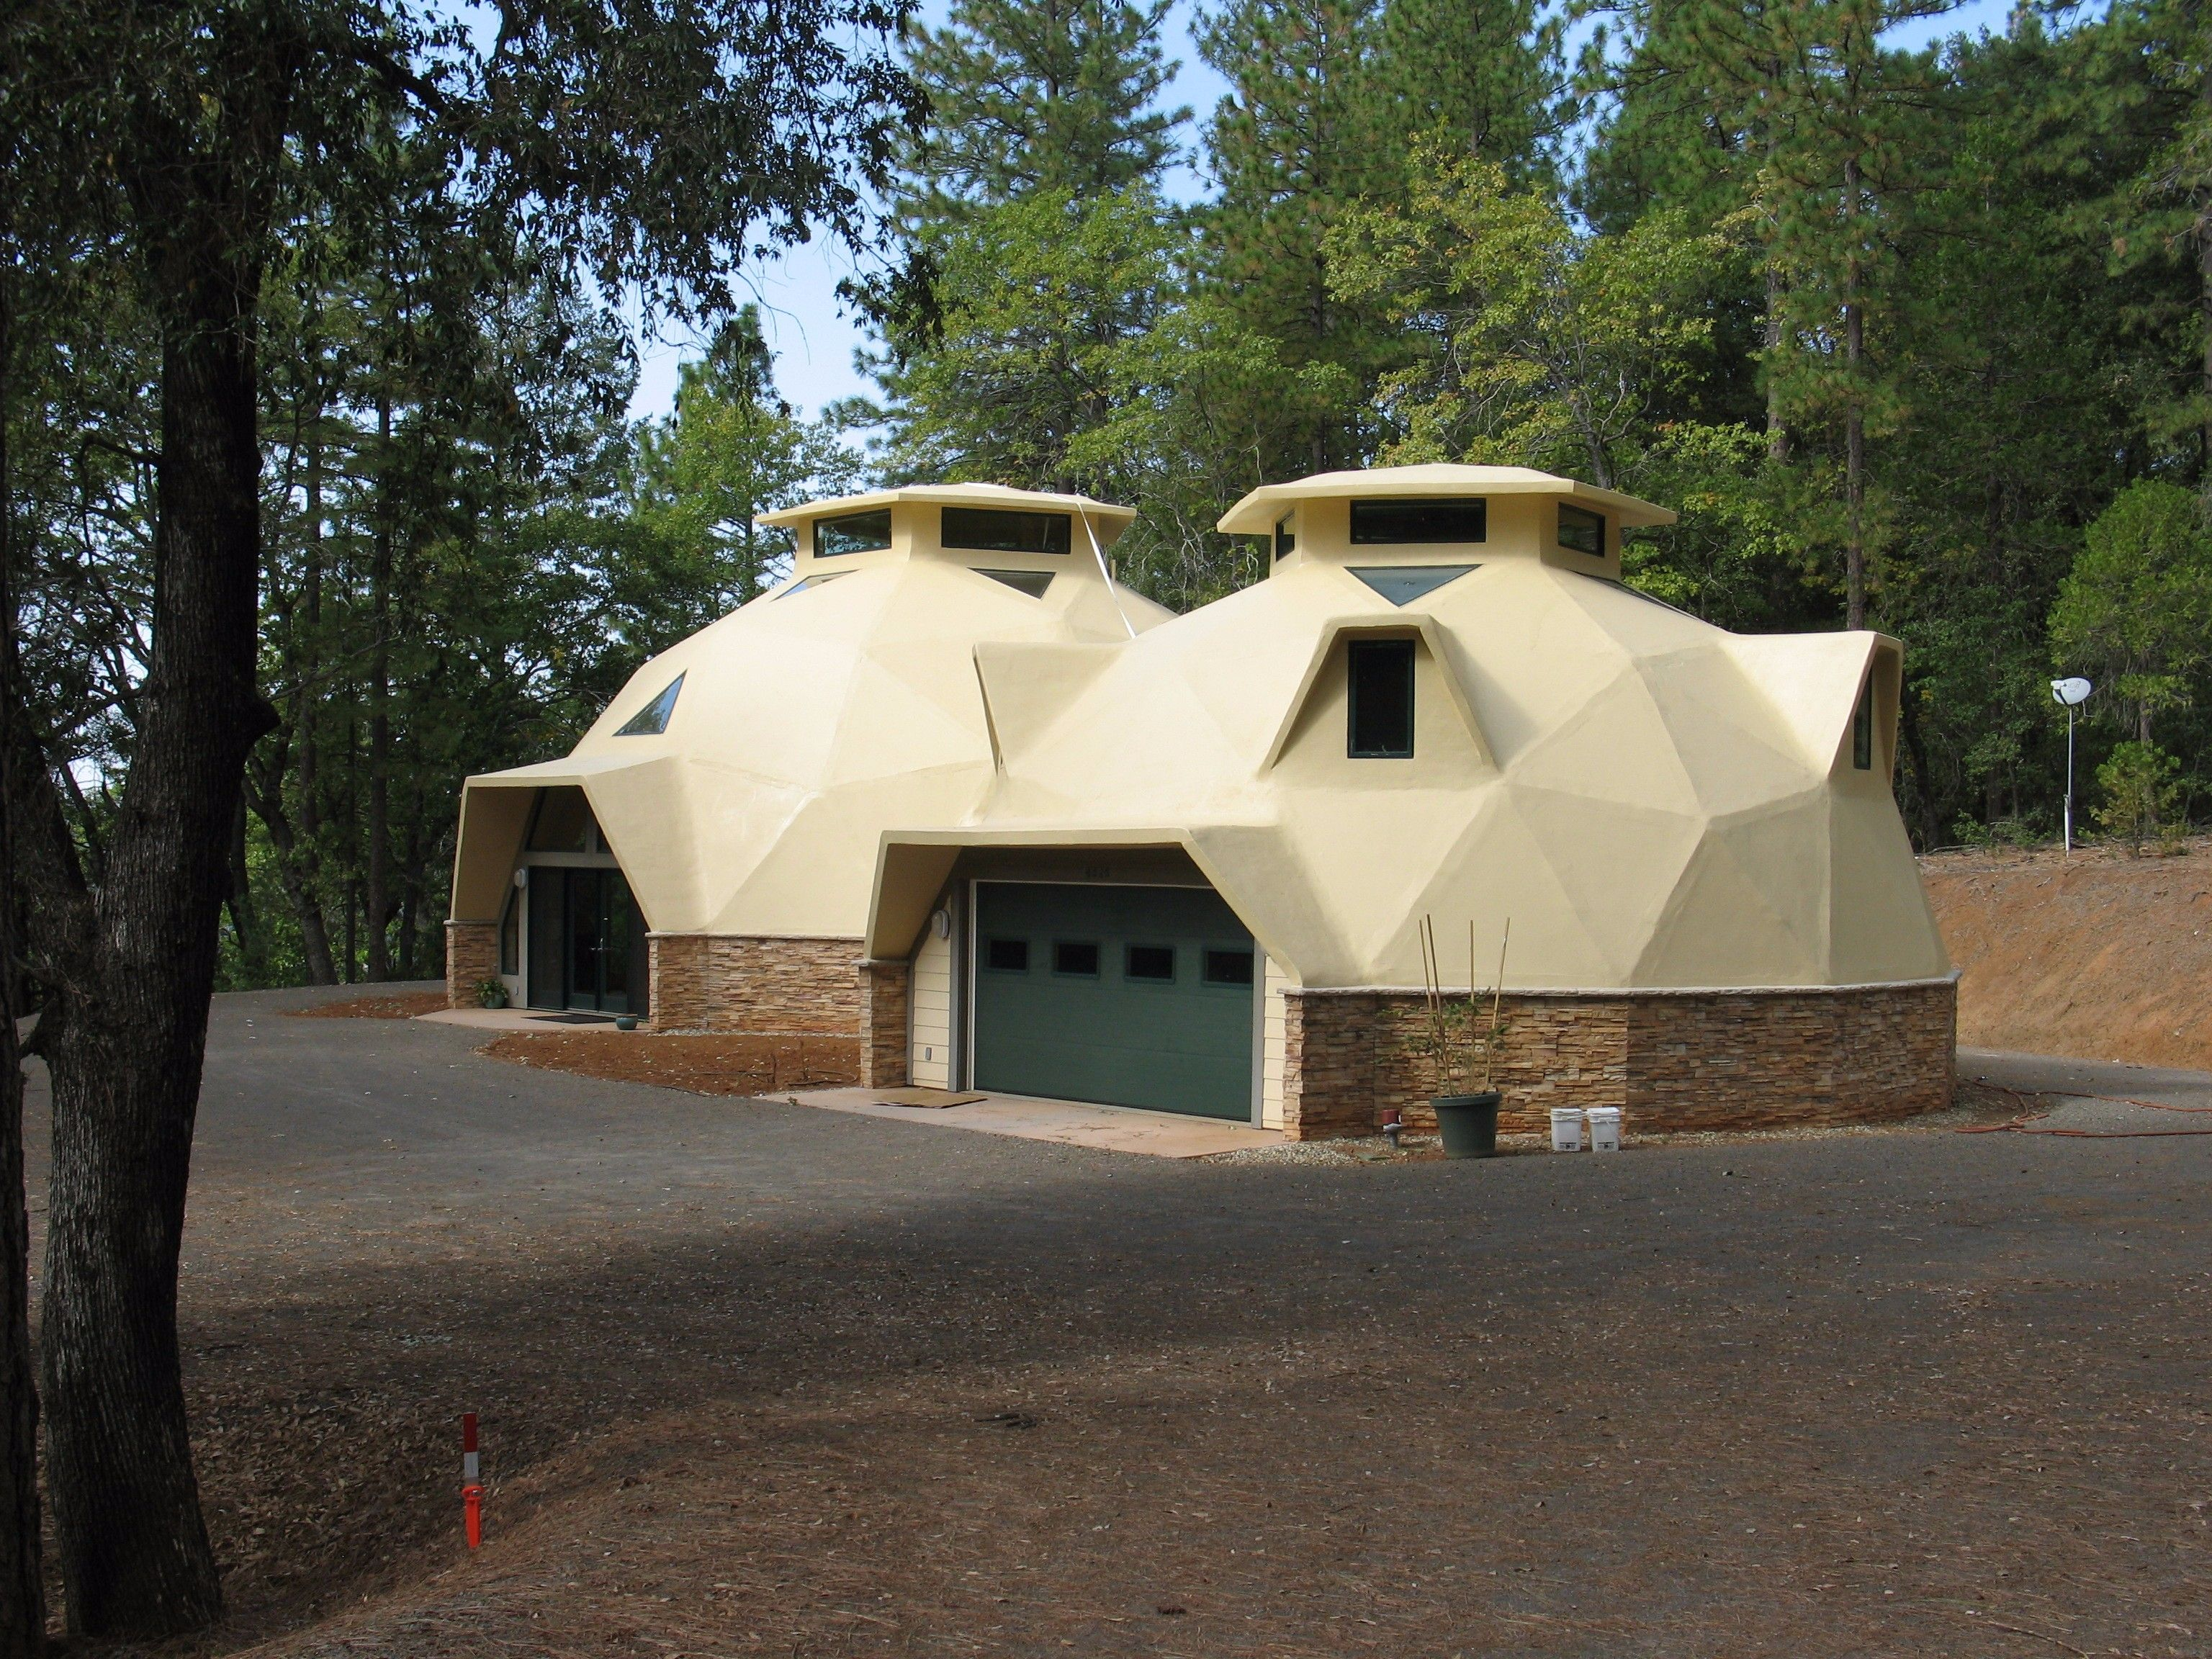 Kaufman garage house 1536 Kaufman garage house 1536 Kopuy Geodesic dome